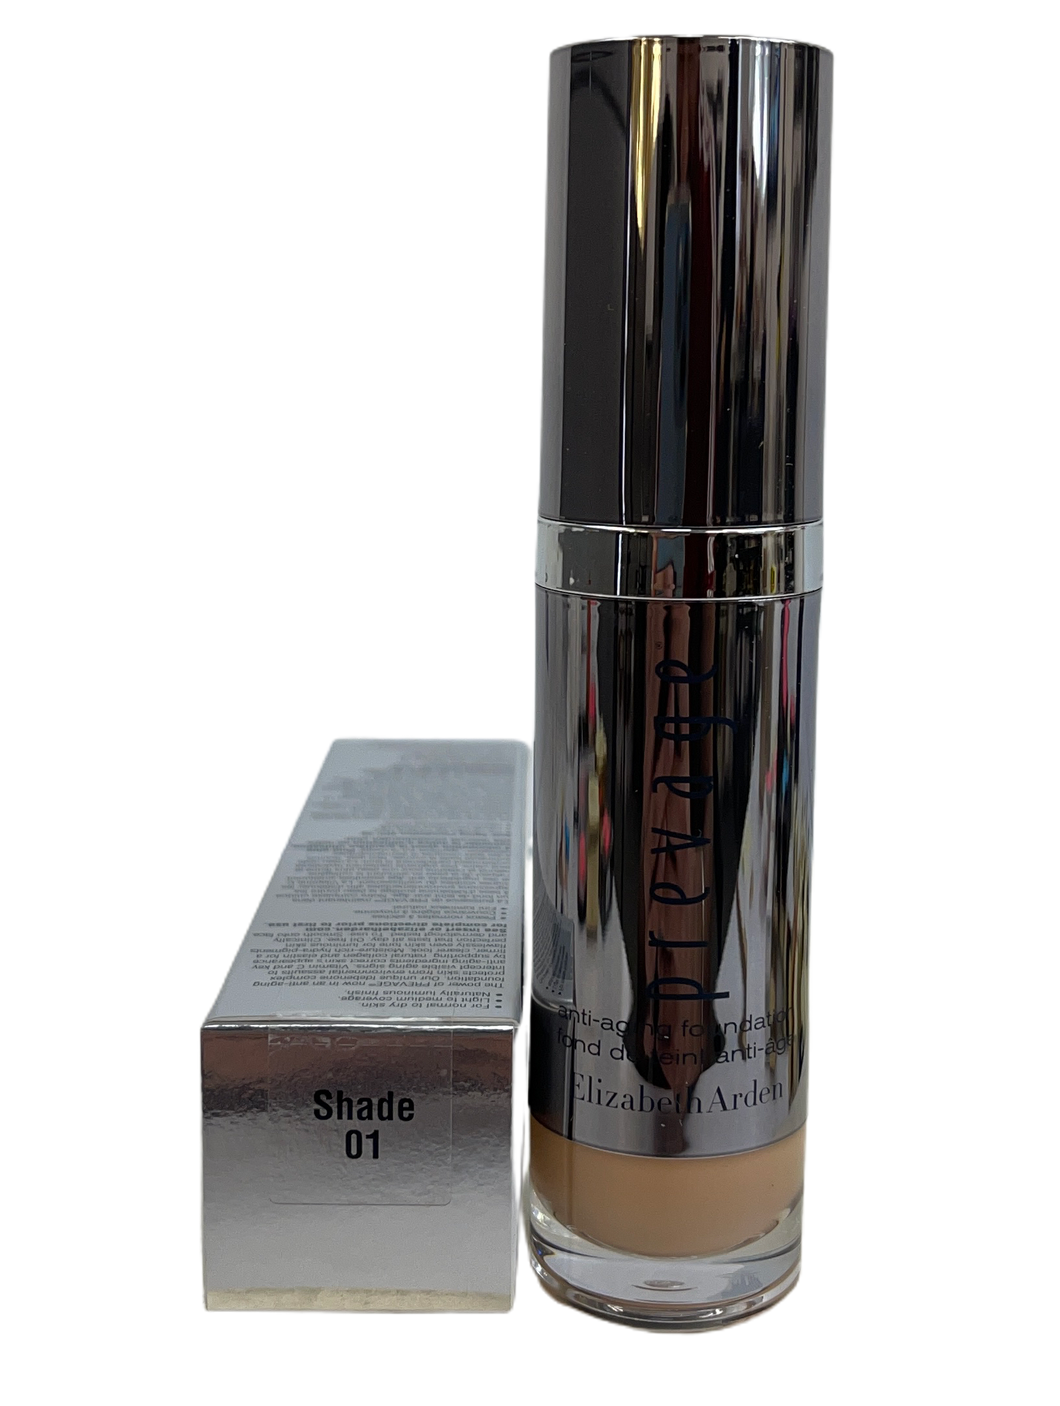 Elizabeth Arden PREVAGE Anti-Aging Foundation SPF 30 1 OZ / 30 ML (01)